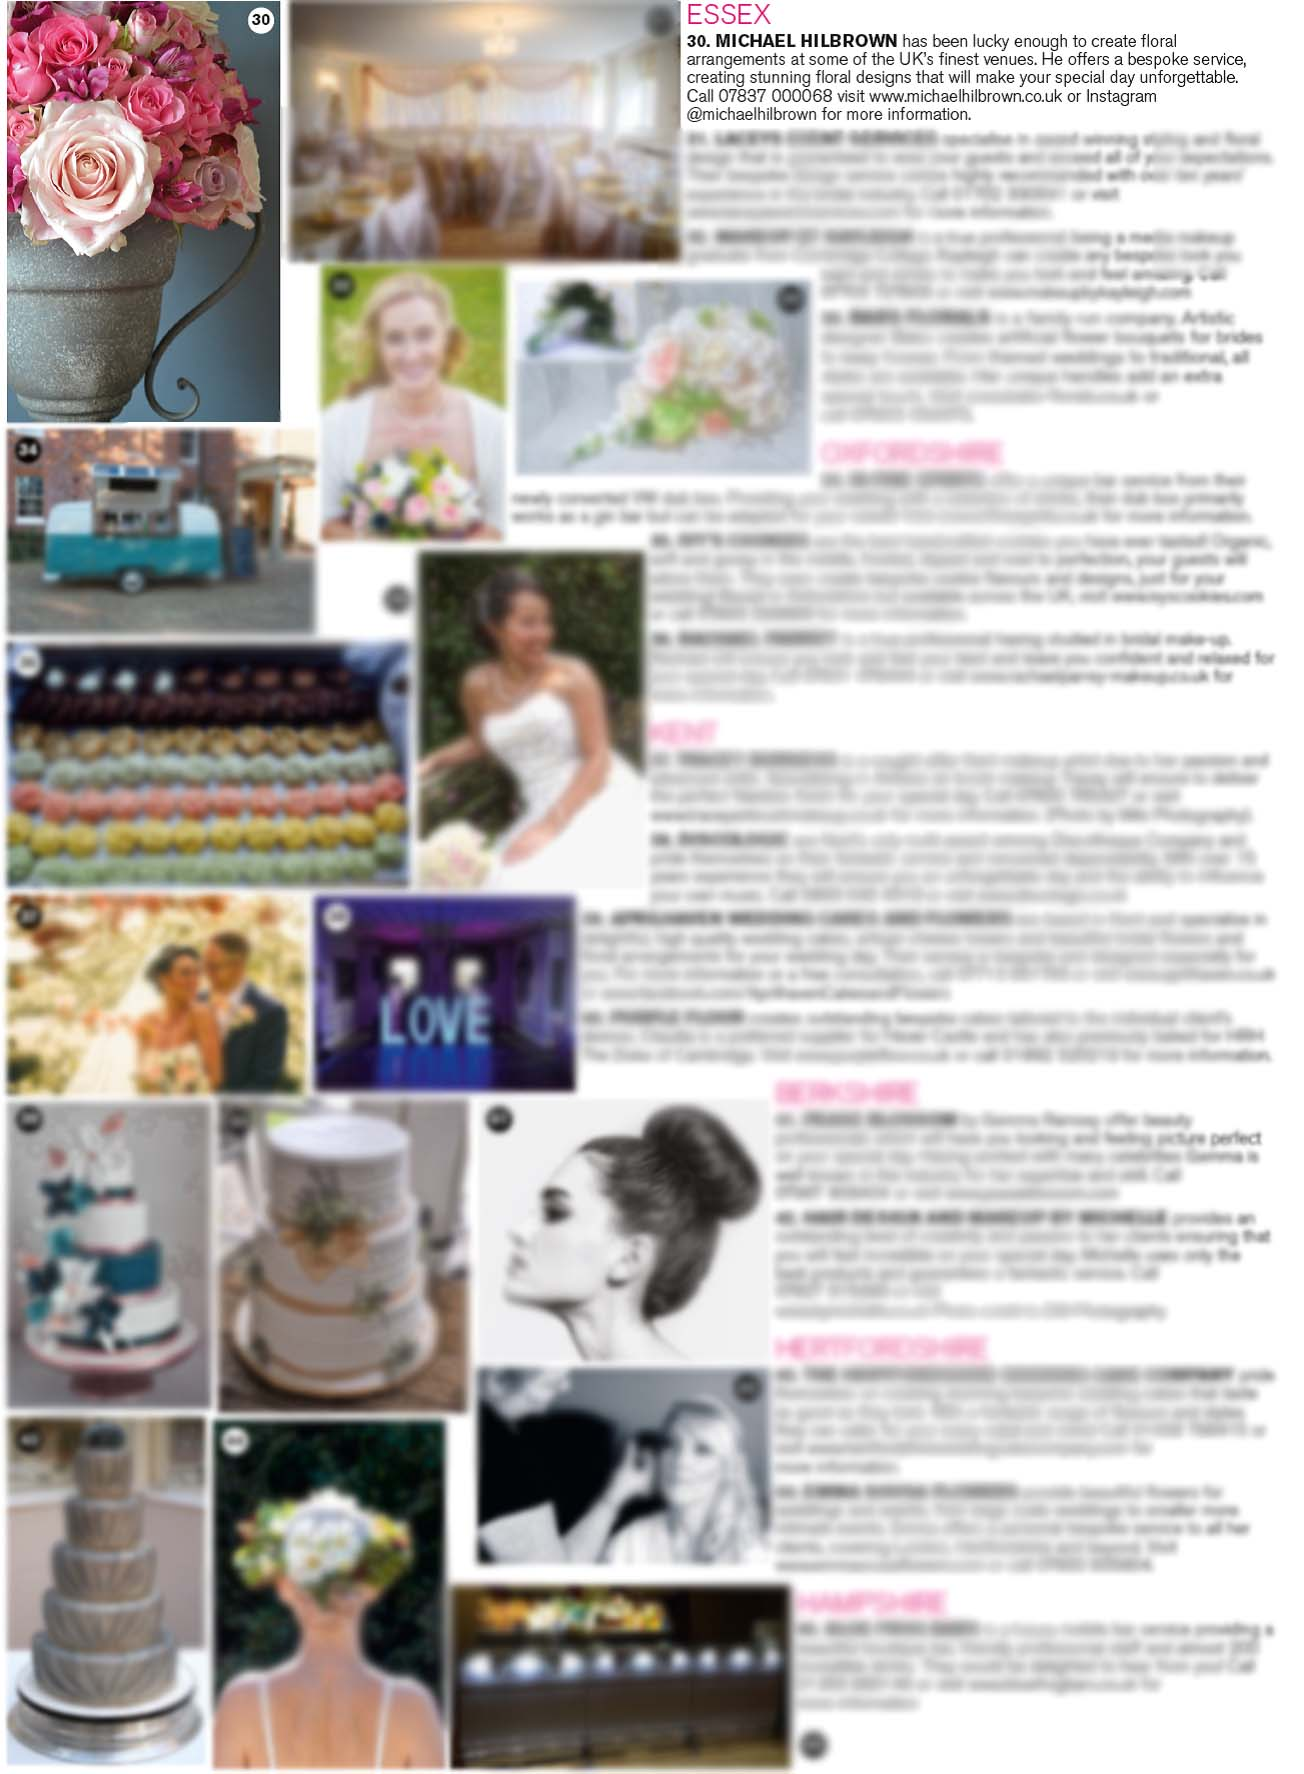 BRIDES Magazine July & August Cupid's Counties - Michael Hilbrown Essex Florist.jpg